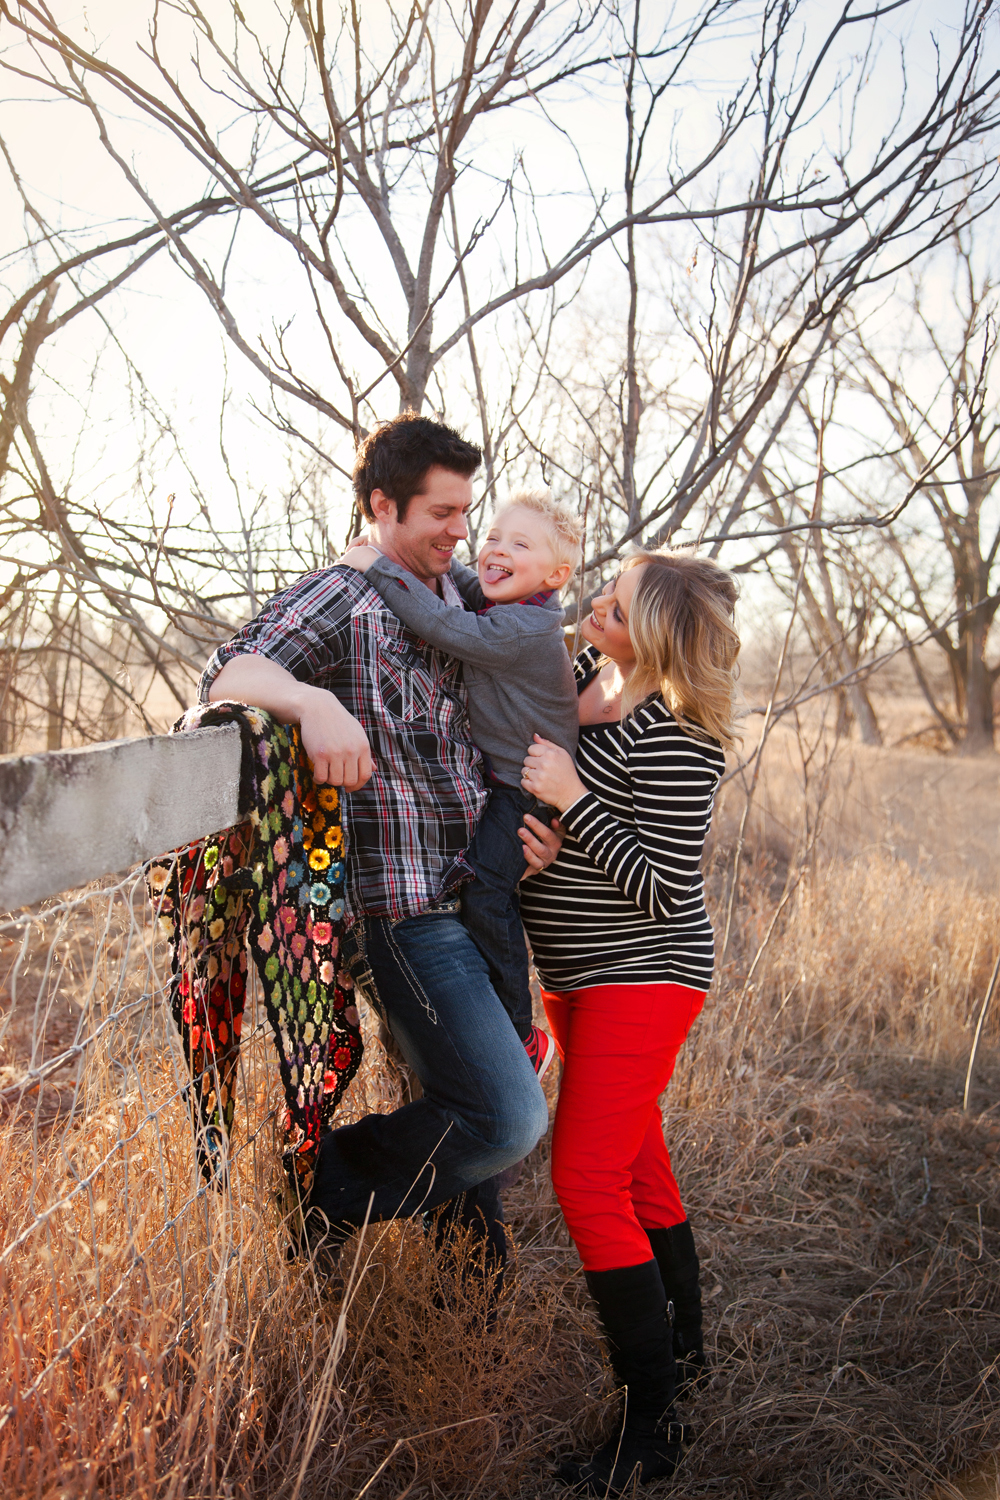 Russtanna_Photography_kearney_nebraska_natural_light_photographer_newborn_senior_family_engagement  (3).jpg